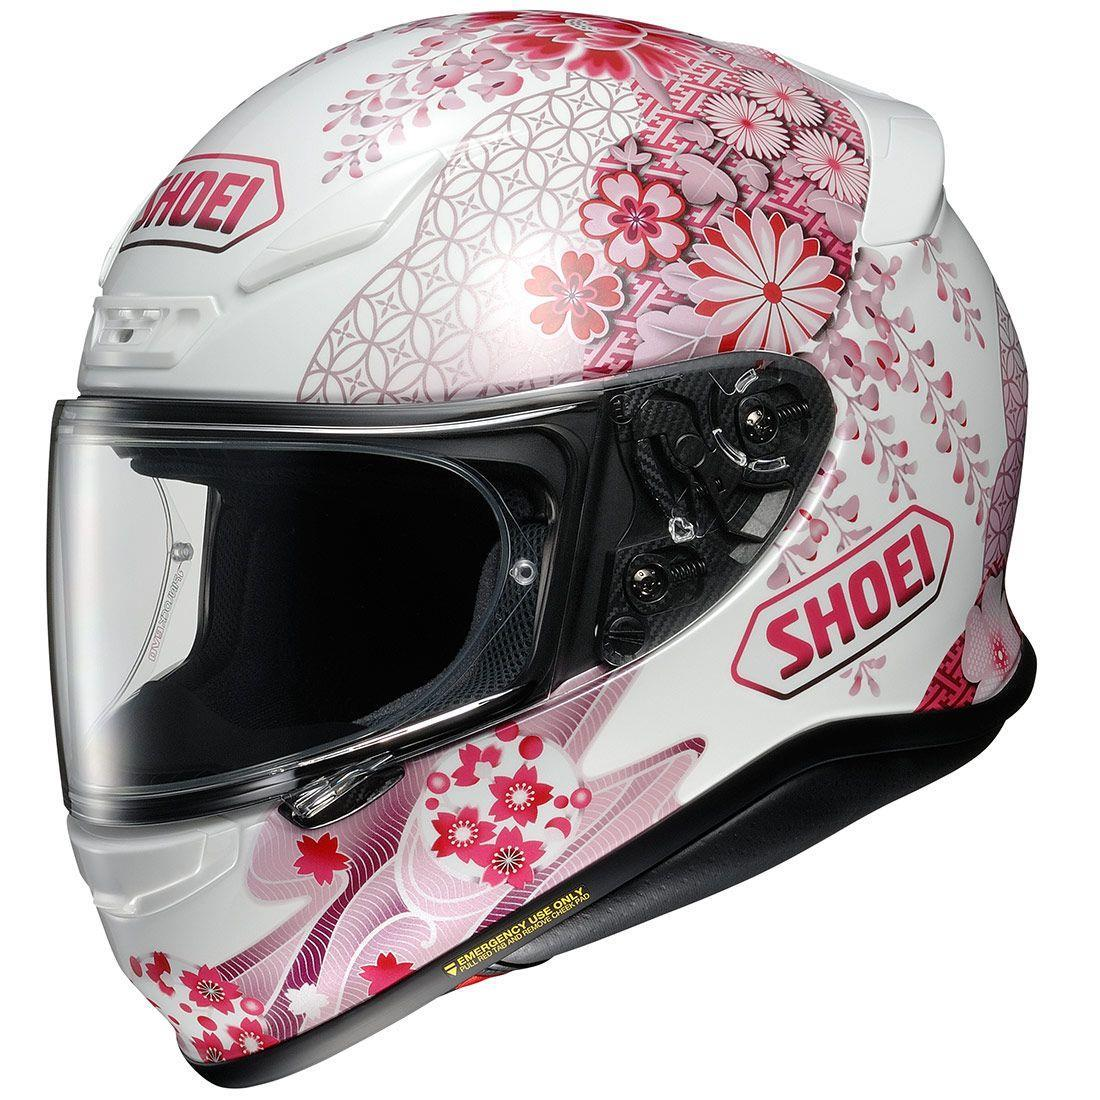 What Are The Best Shoei Helmets?